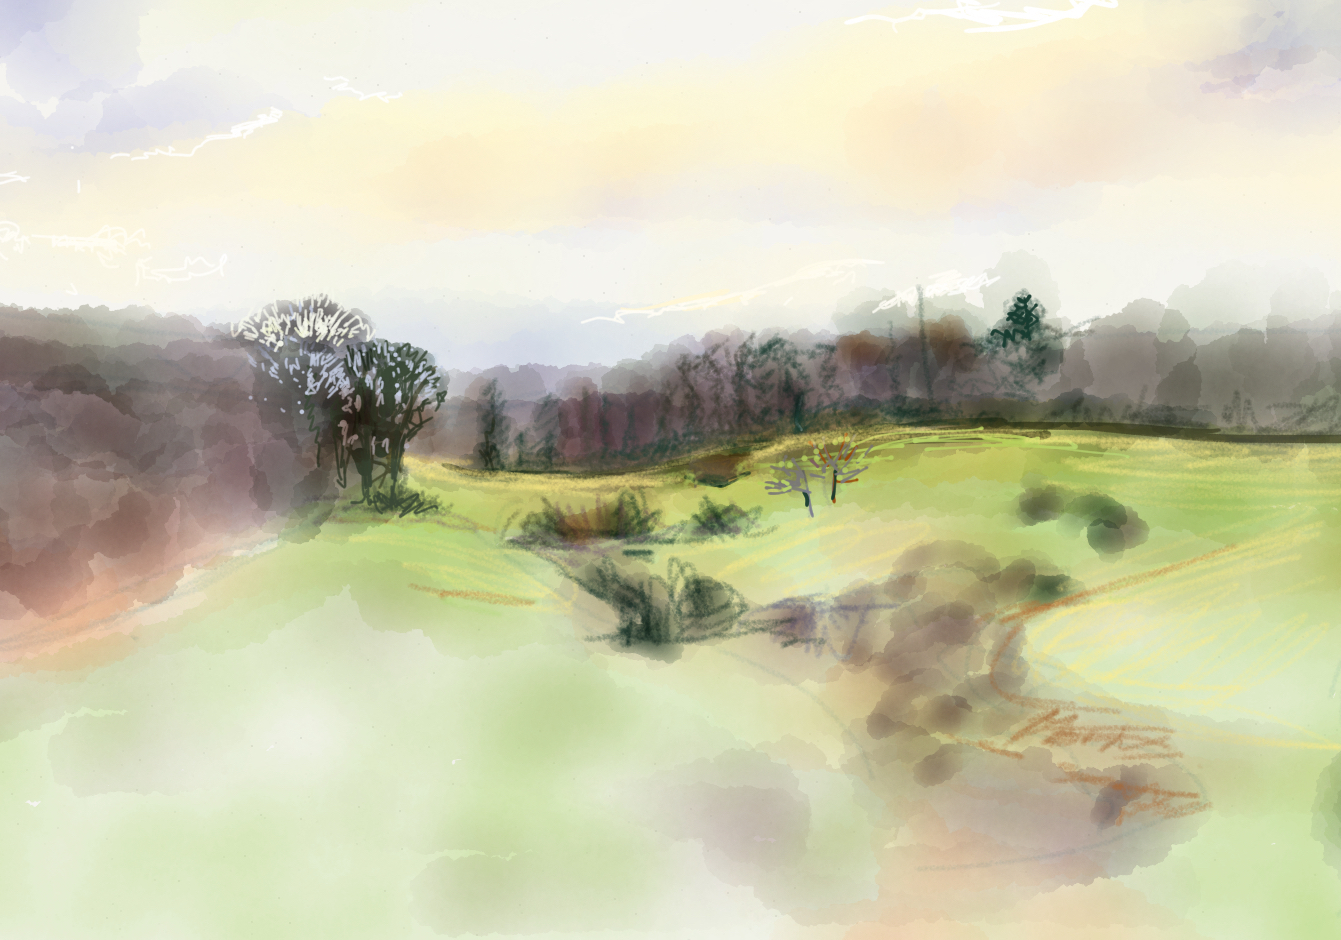 Ipad sketch, view from my window